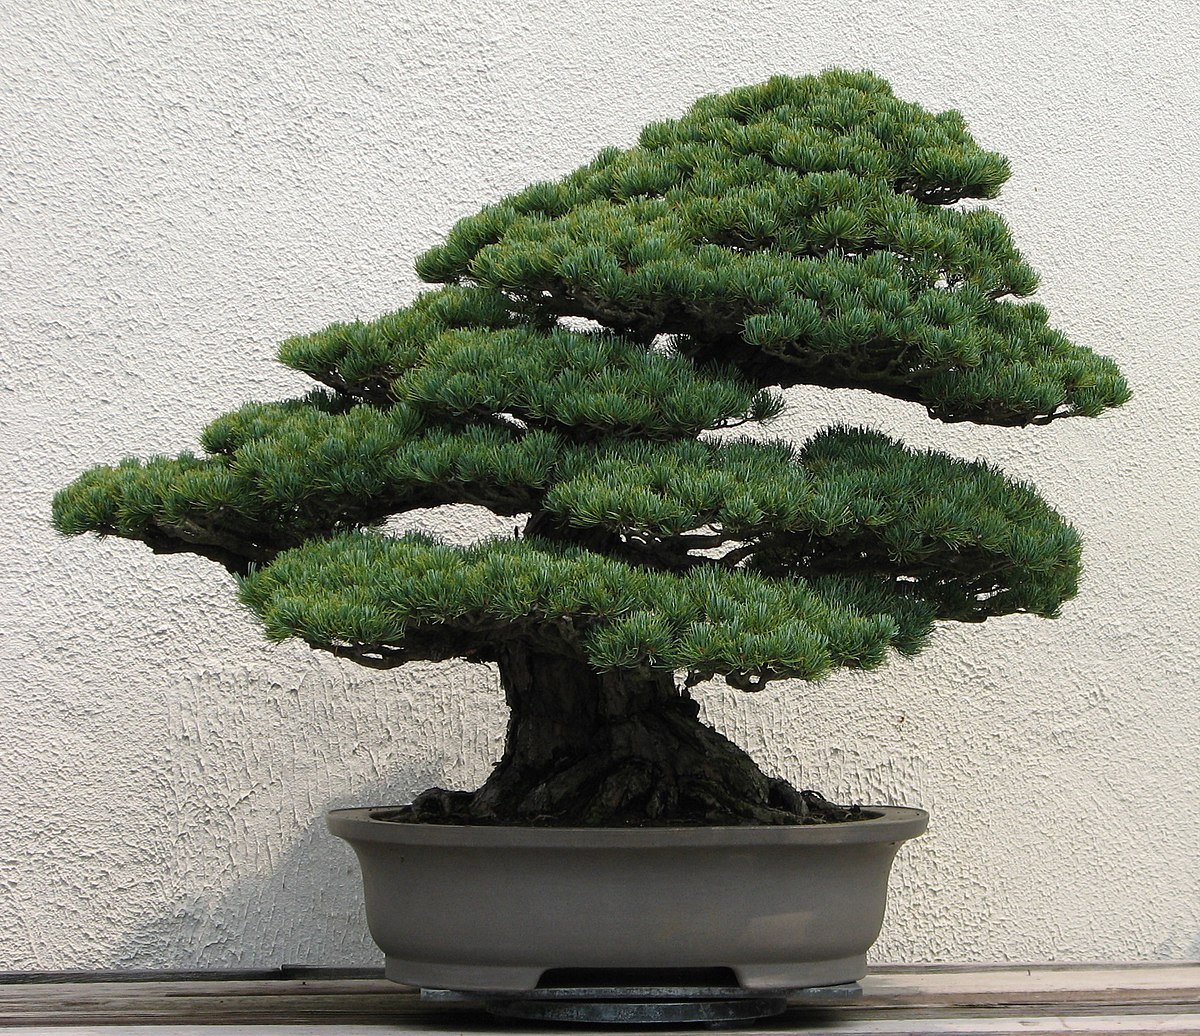 Bonsai plants be equipped ancient bonsai tree be equipped who sells bonsai trees be equipped spruce bonsai be equipped bonsai basics